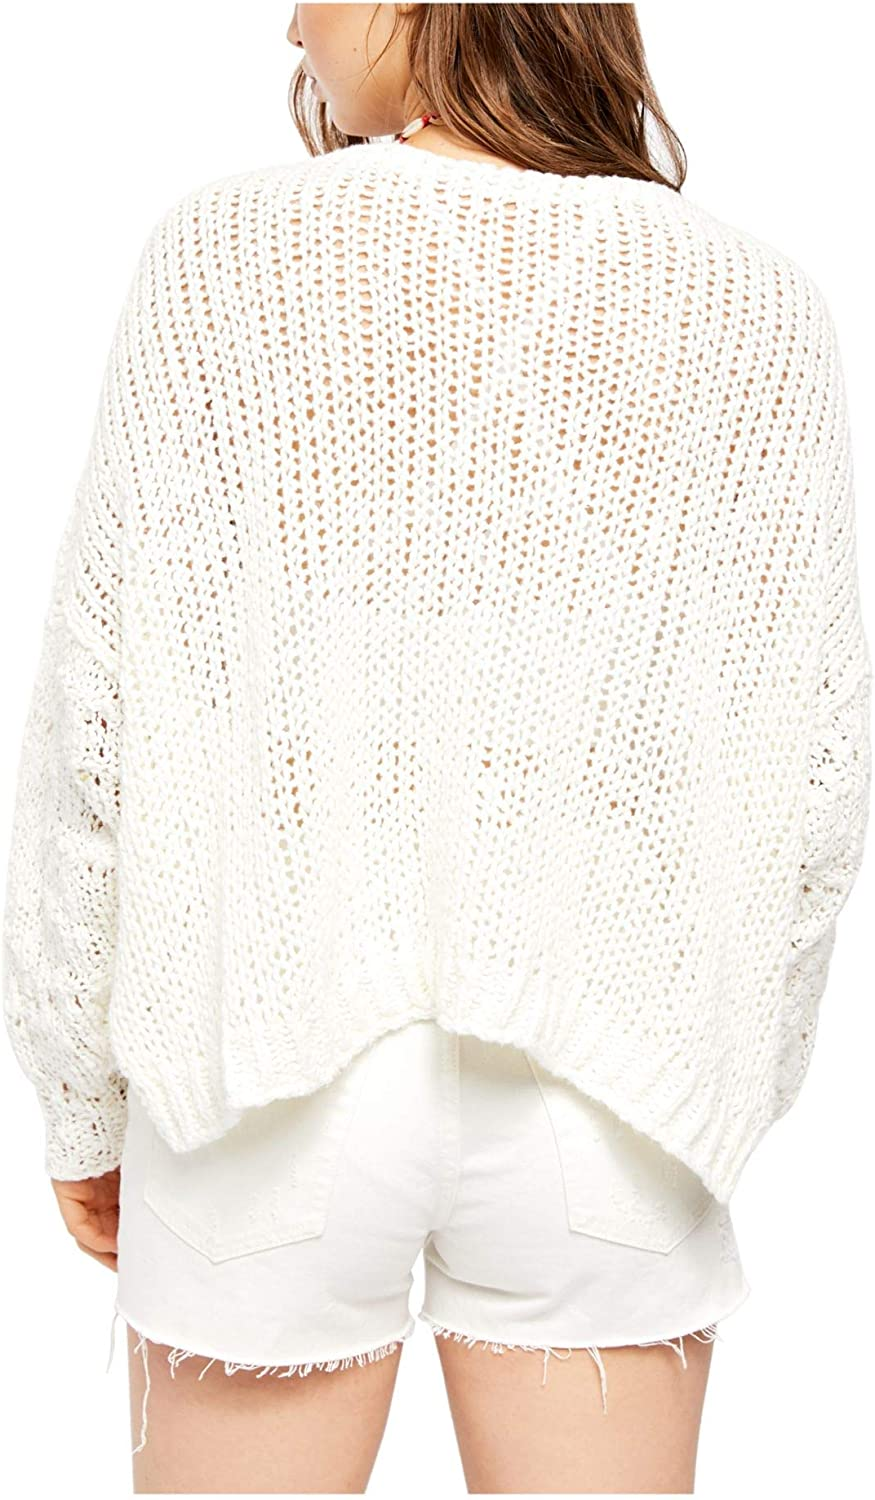 Free People Womens Open Stitch Sheer Crop Top